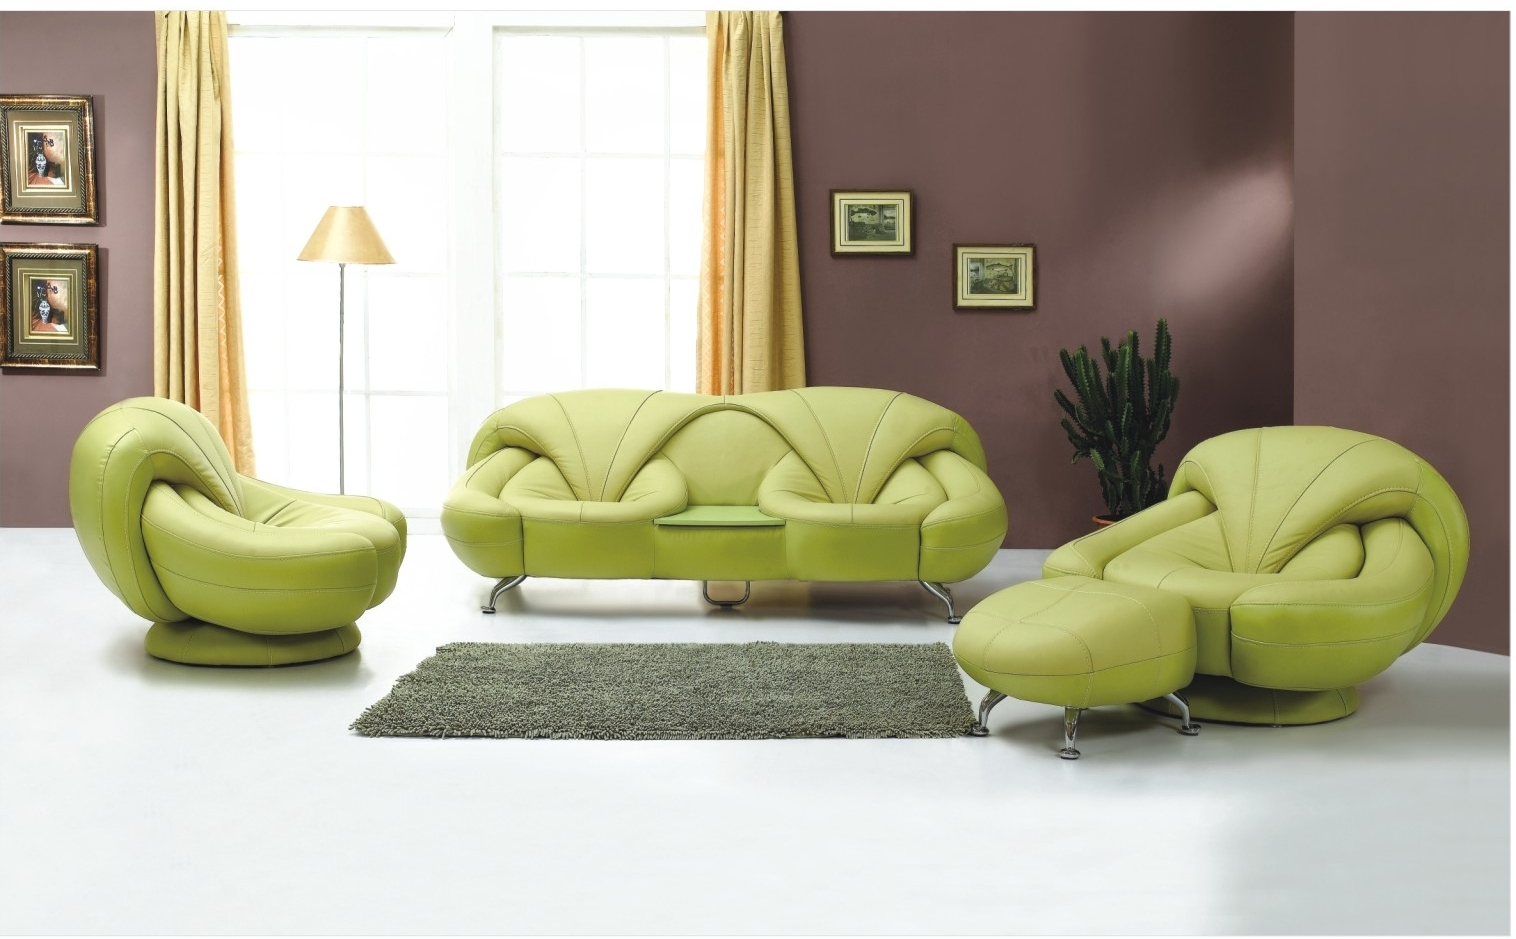 http://4.bp.blogspot.com/-TwxWkVeB3Zg/UA6j-8VBFtI/AAAAAAAAO5U/r479zapBvj0/s1600/Modern%20living%20room%20furniture%20designs%20ideas..jpg